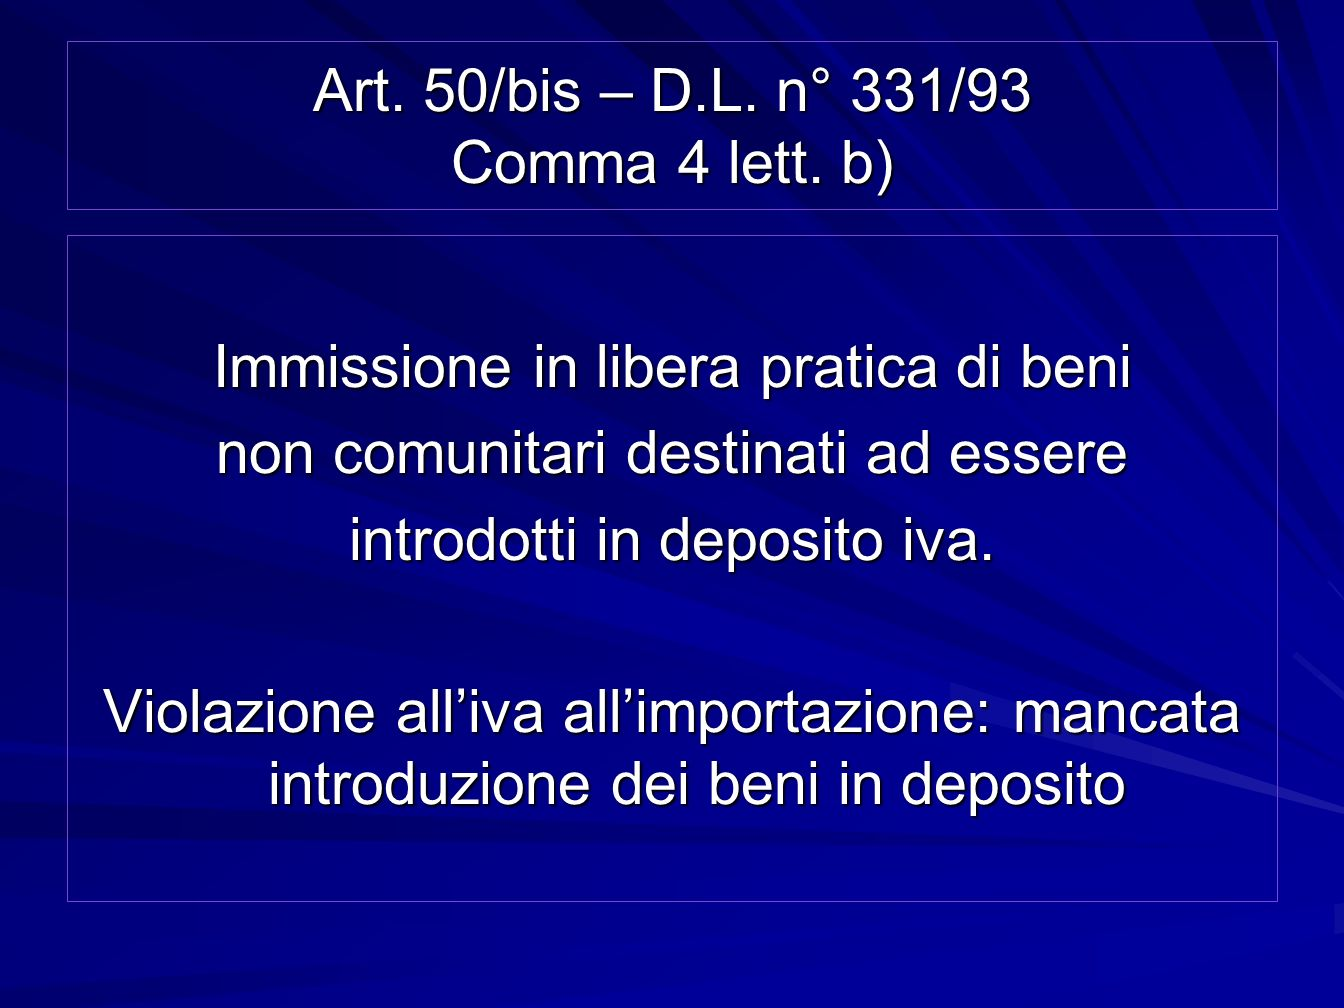 Art. 50/bis – D.L. n° 331/93 Comma 4 lett. b)